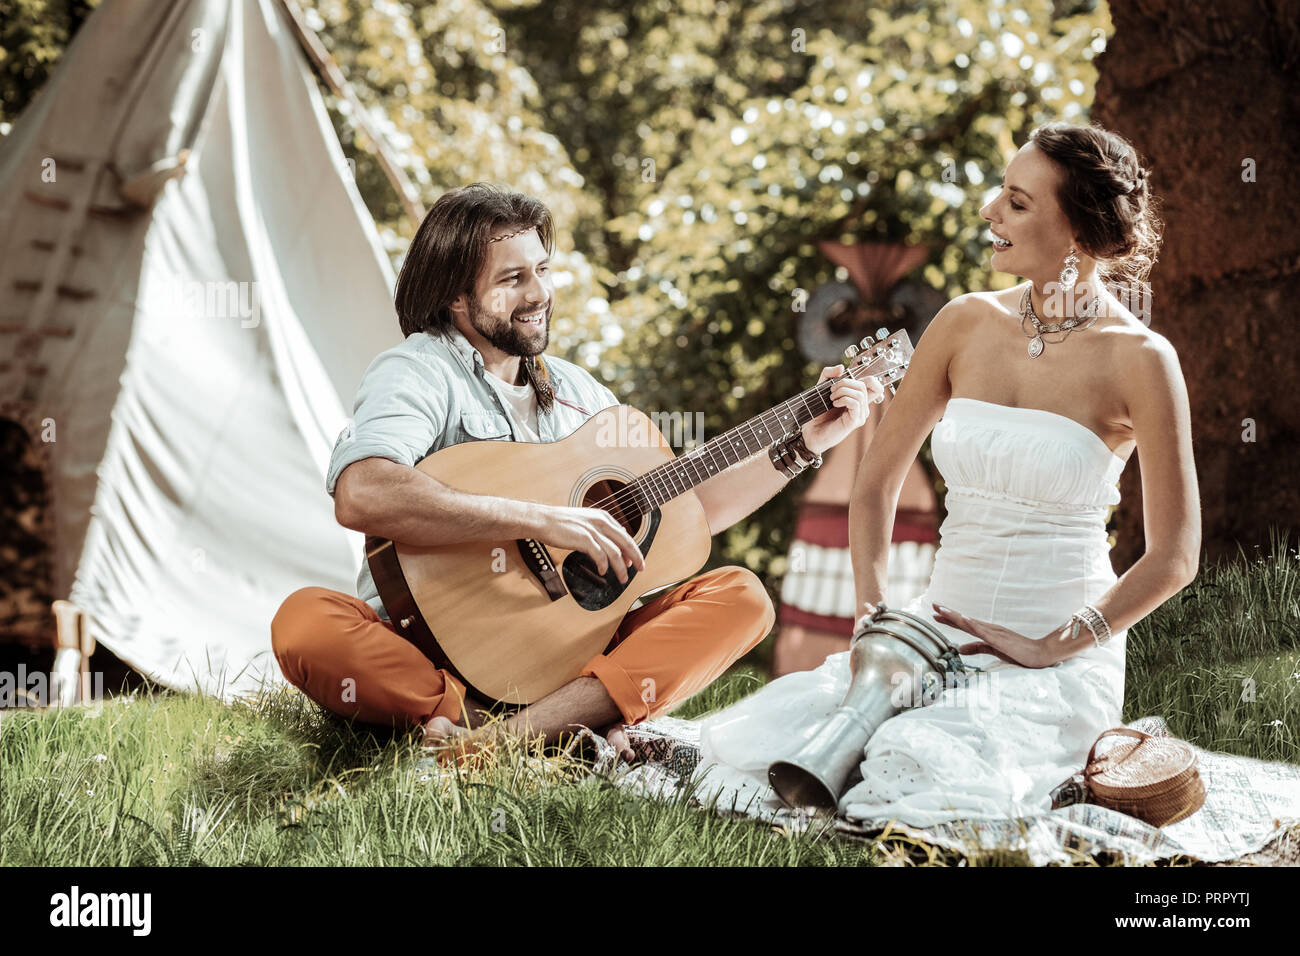 Cheerful young man and woman singing songs - Stock Image